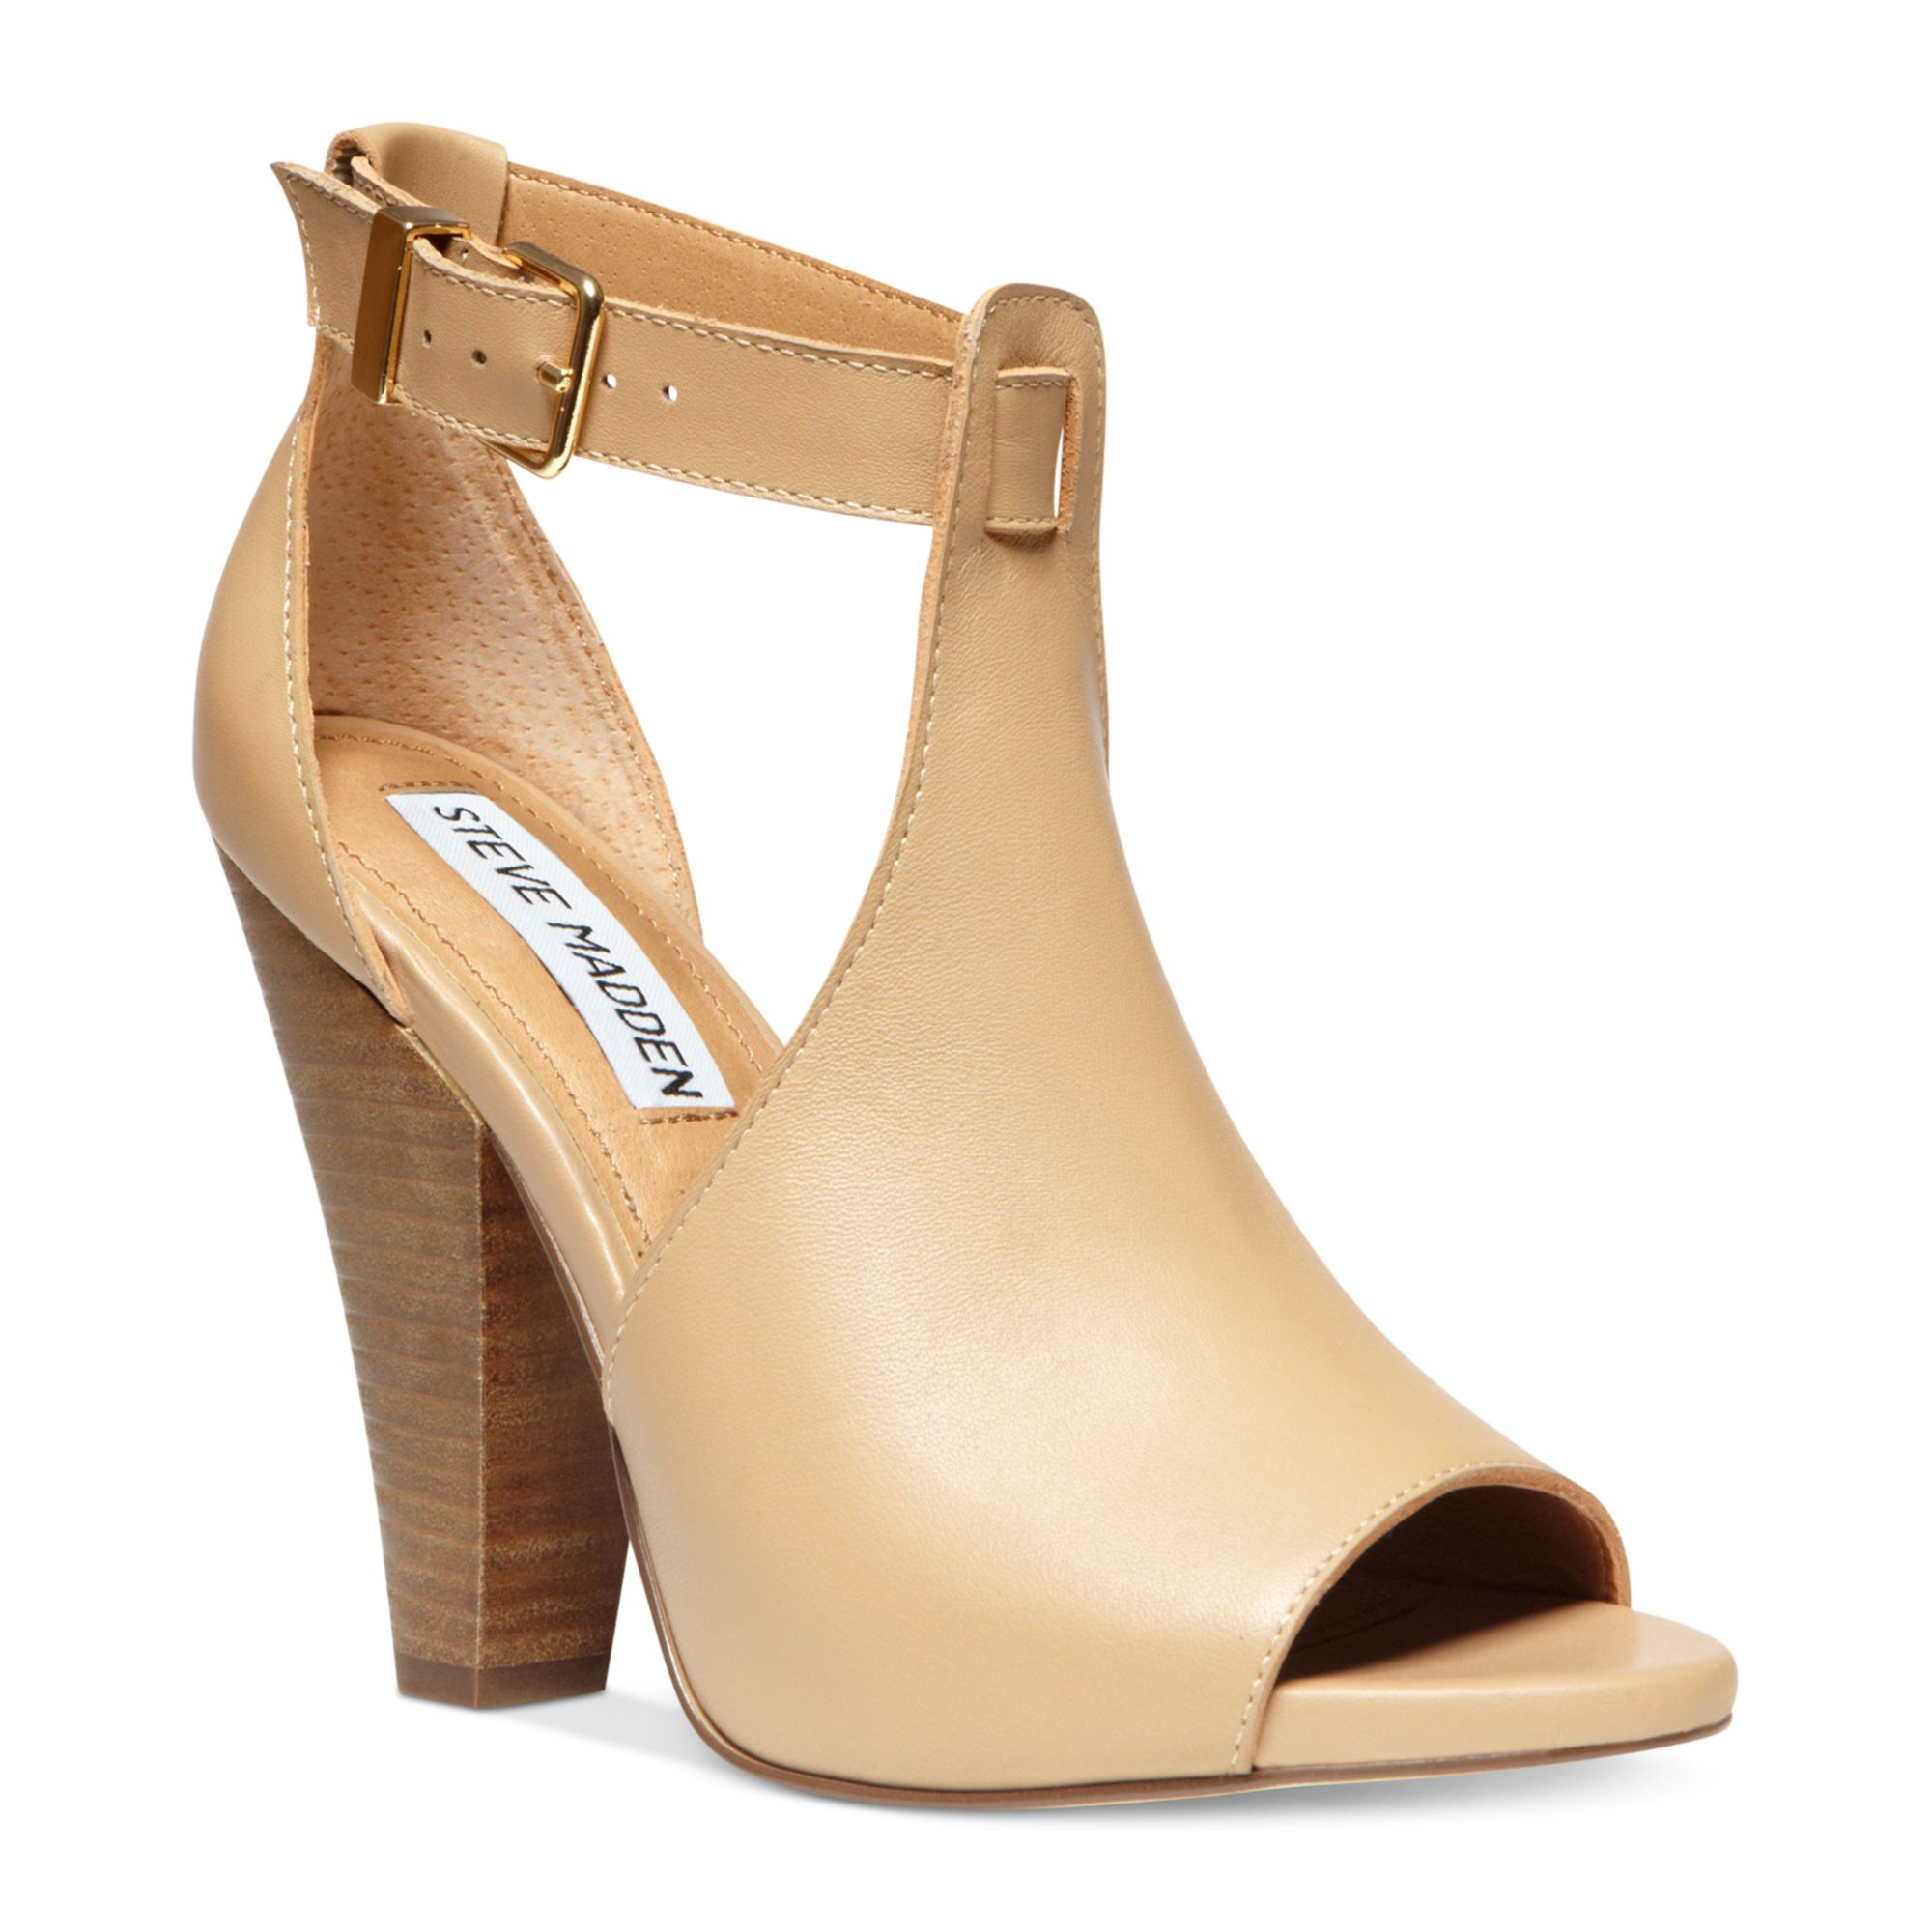 Lyst Steve Madden Womens Alycce Sandals In Natural